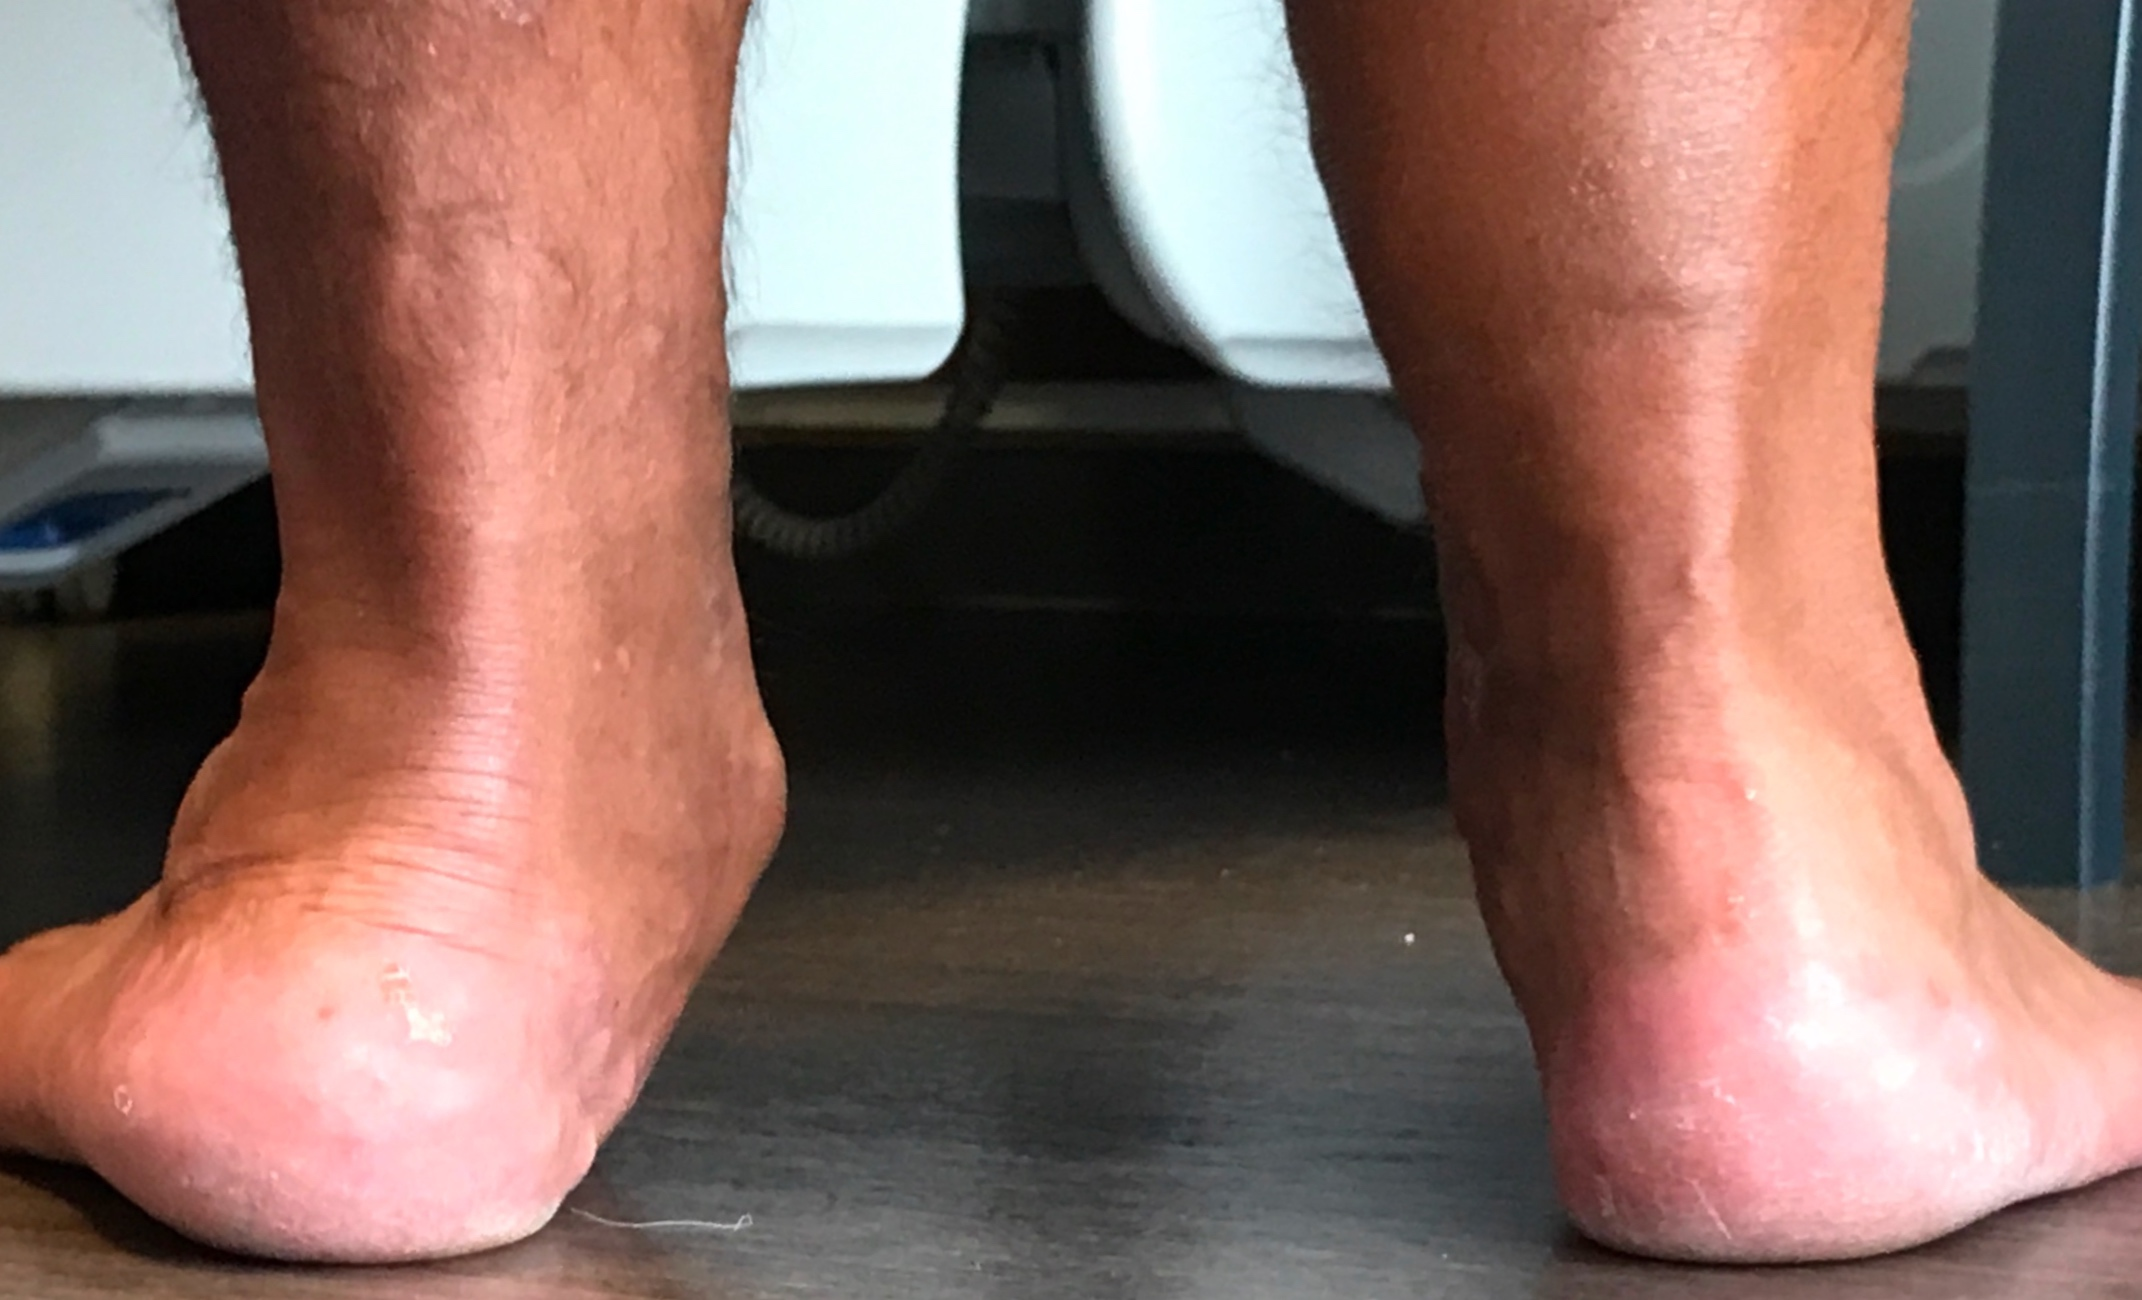 Adult Aquired Flatfoot Deformity - This photograph shows a severe flatfoot deformity on the left. This required complex reconstructive surgery to both the foot and ankle performed by Mr Redfern.